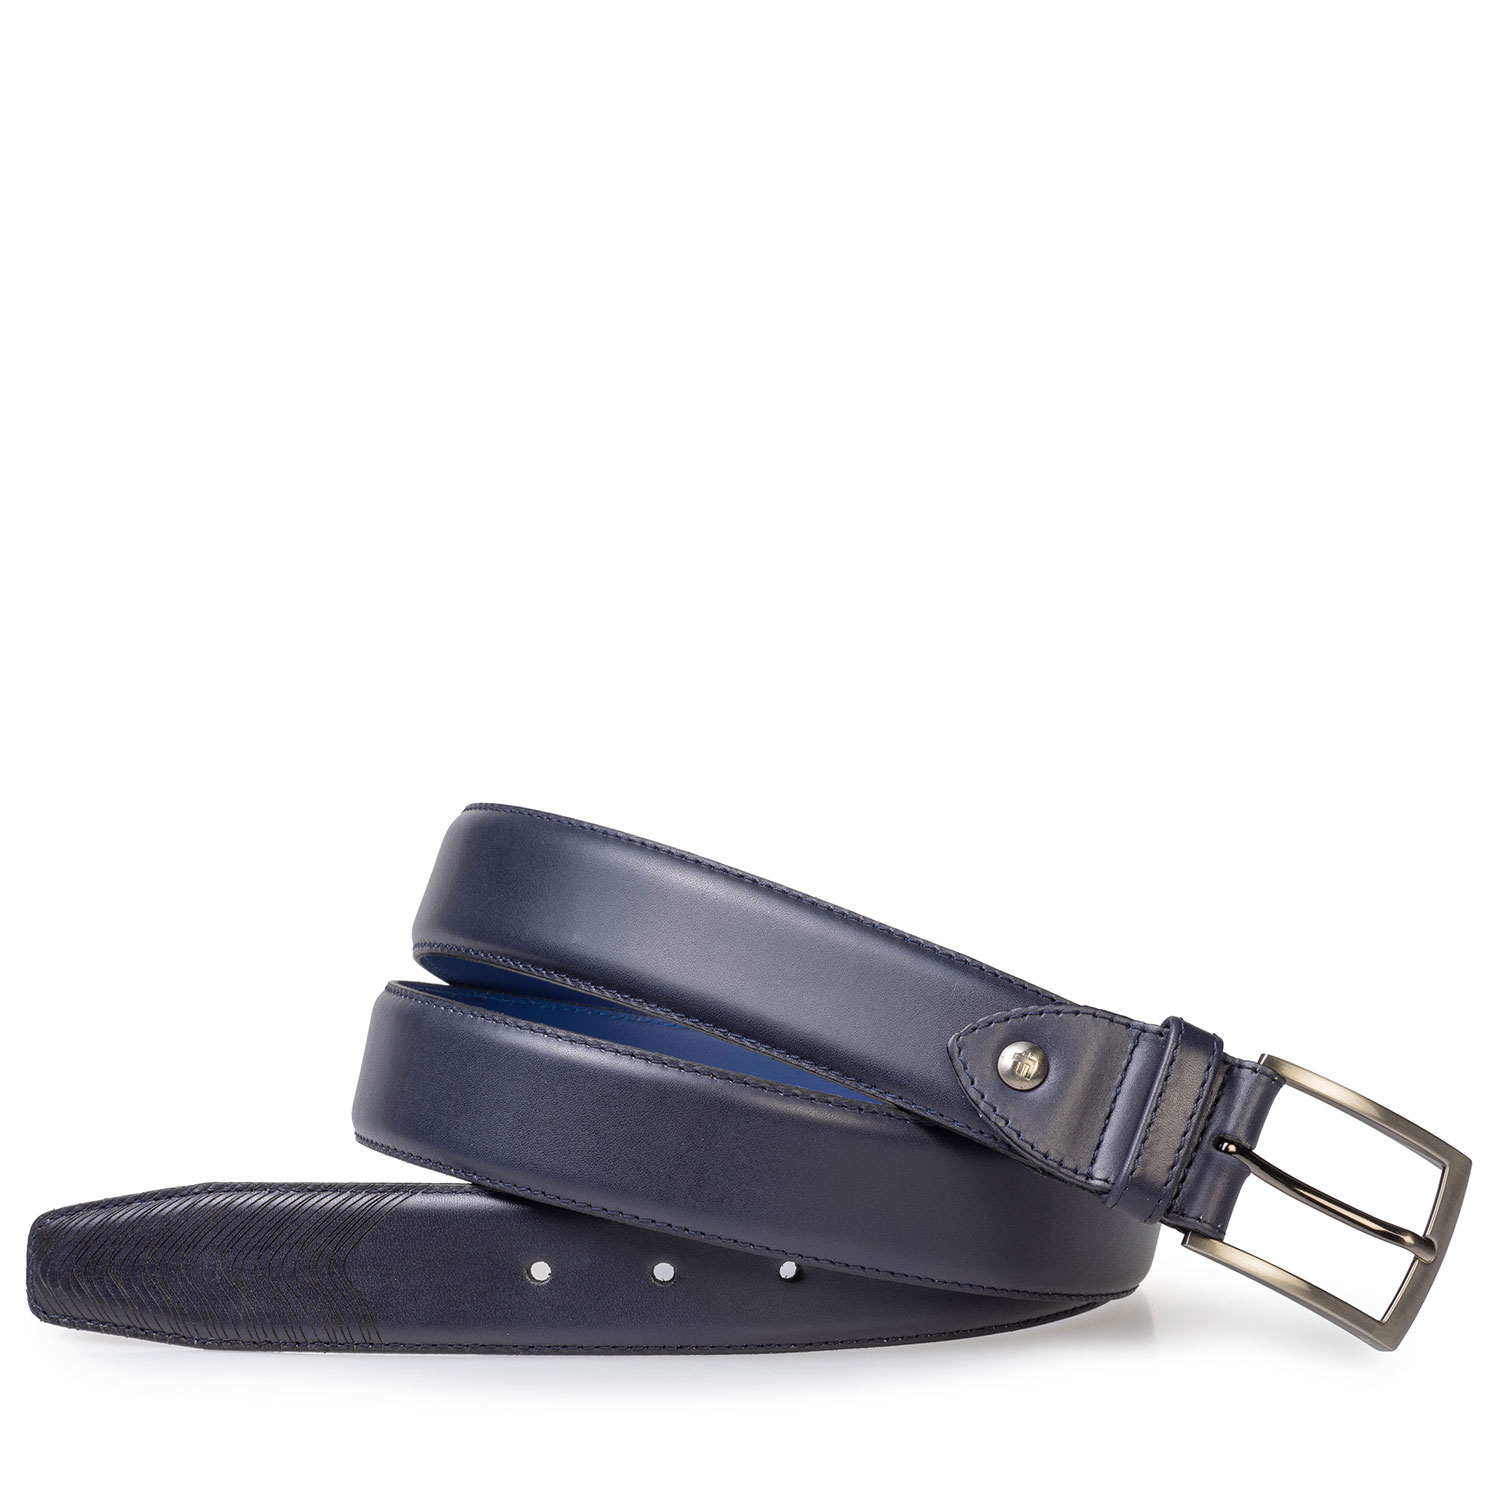 75216/01 - Dark blue calf leather belt